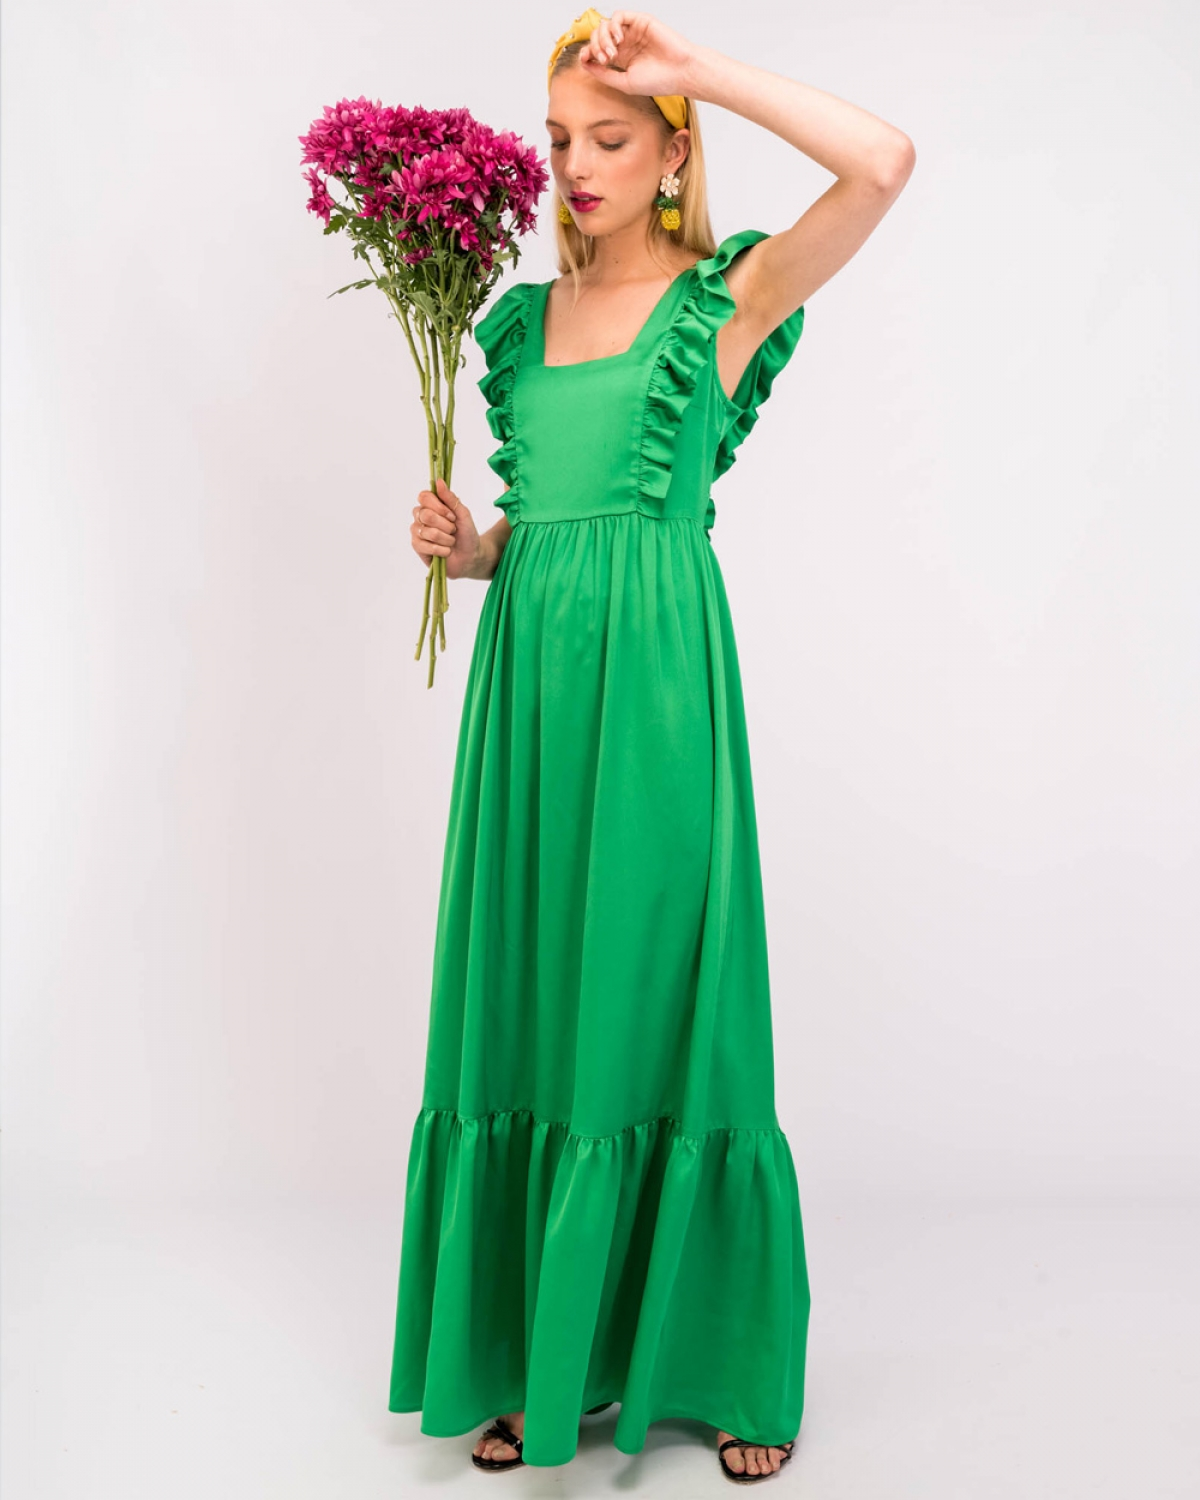 Tinda Green Dress